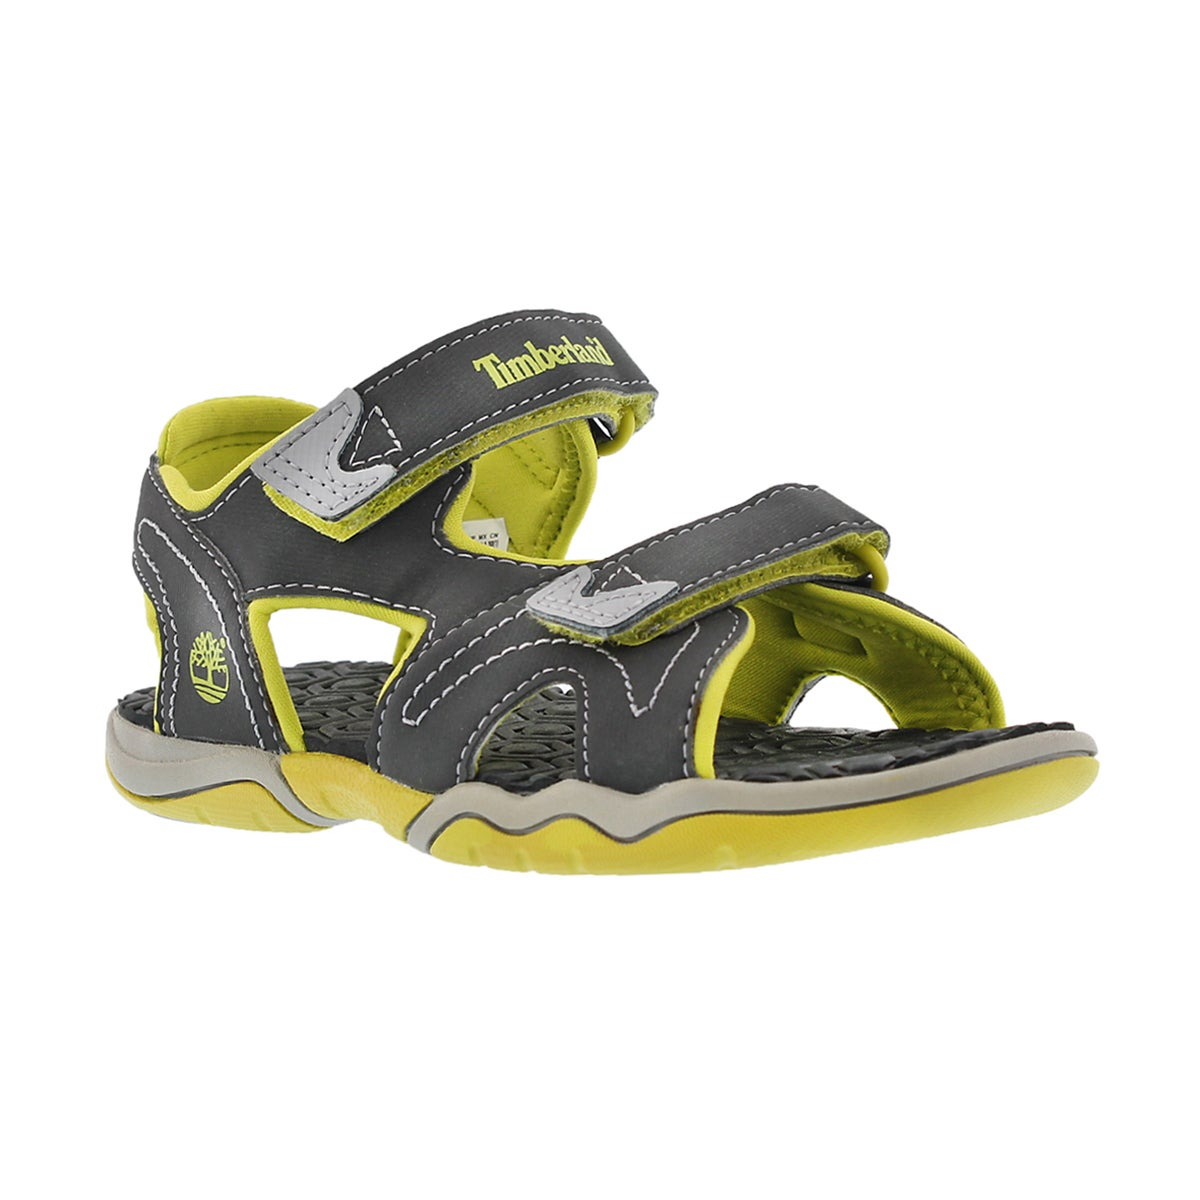 Boys' ADVENTURE SEEKER grey/green sport sandals